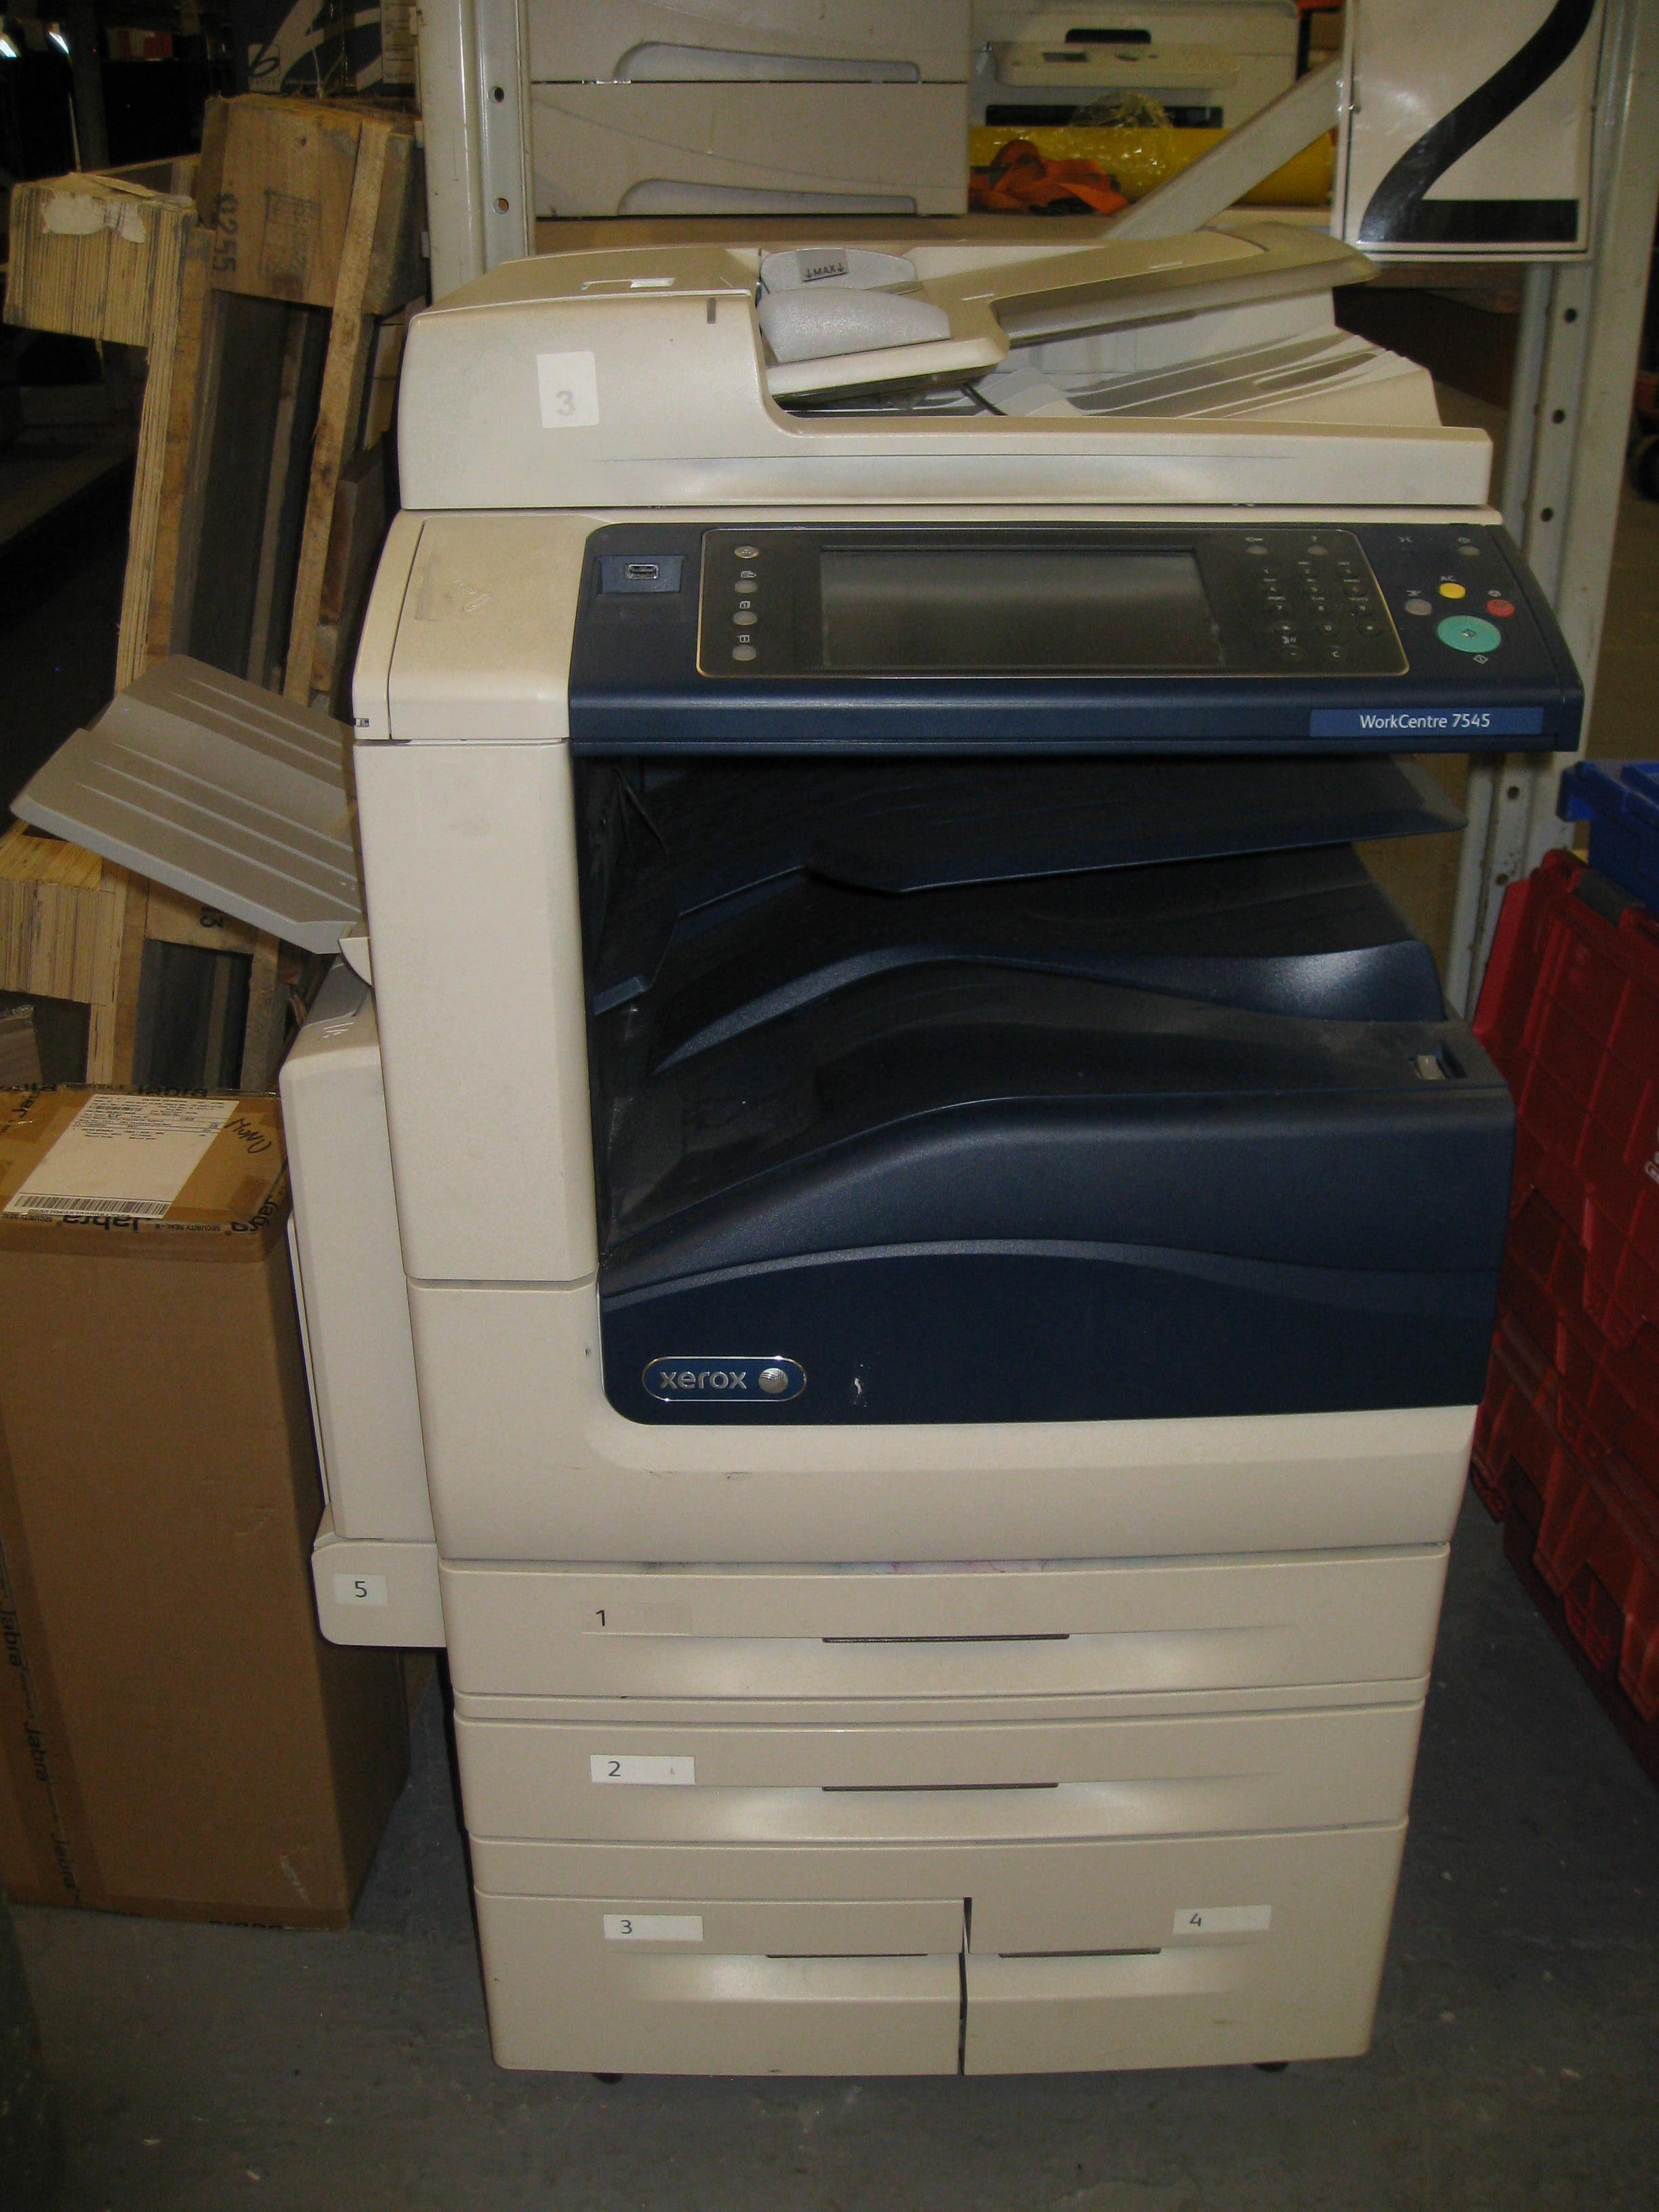 XEROX WORKCENTRE 7545  NOT POWERING UP  NEEDS ATTENTION